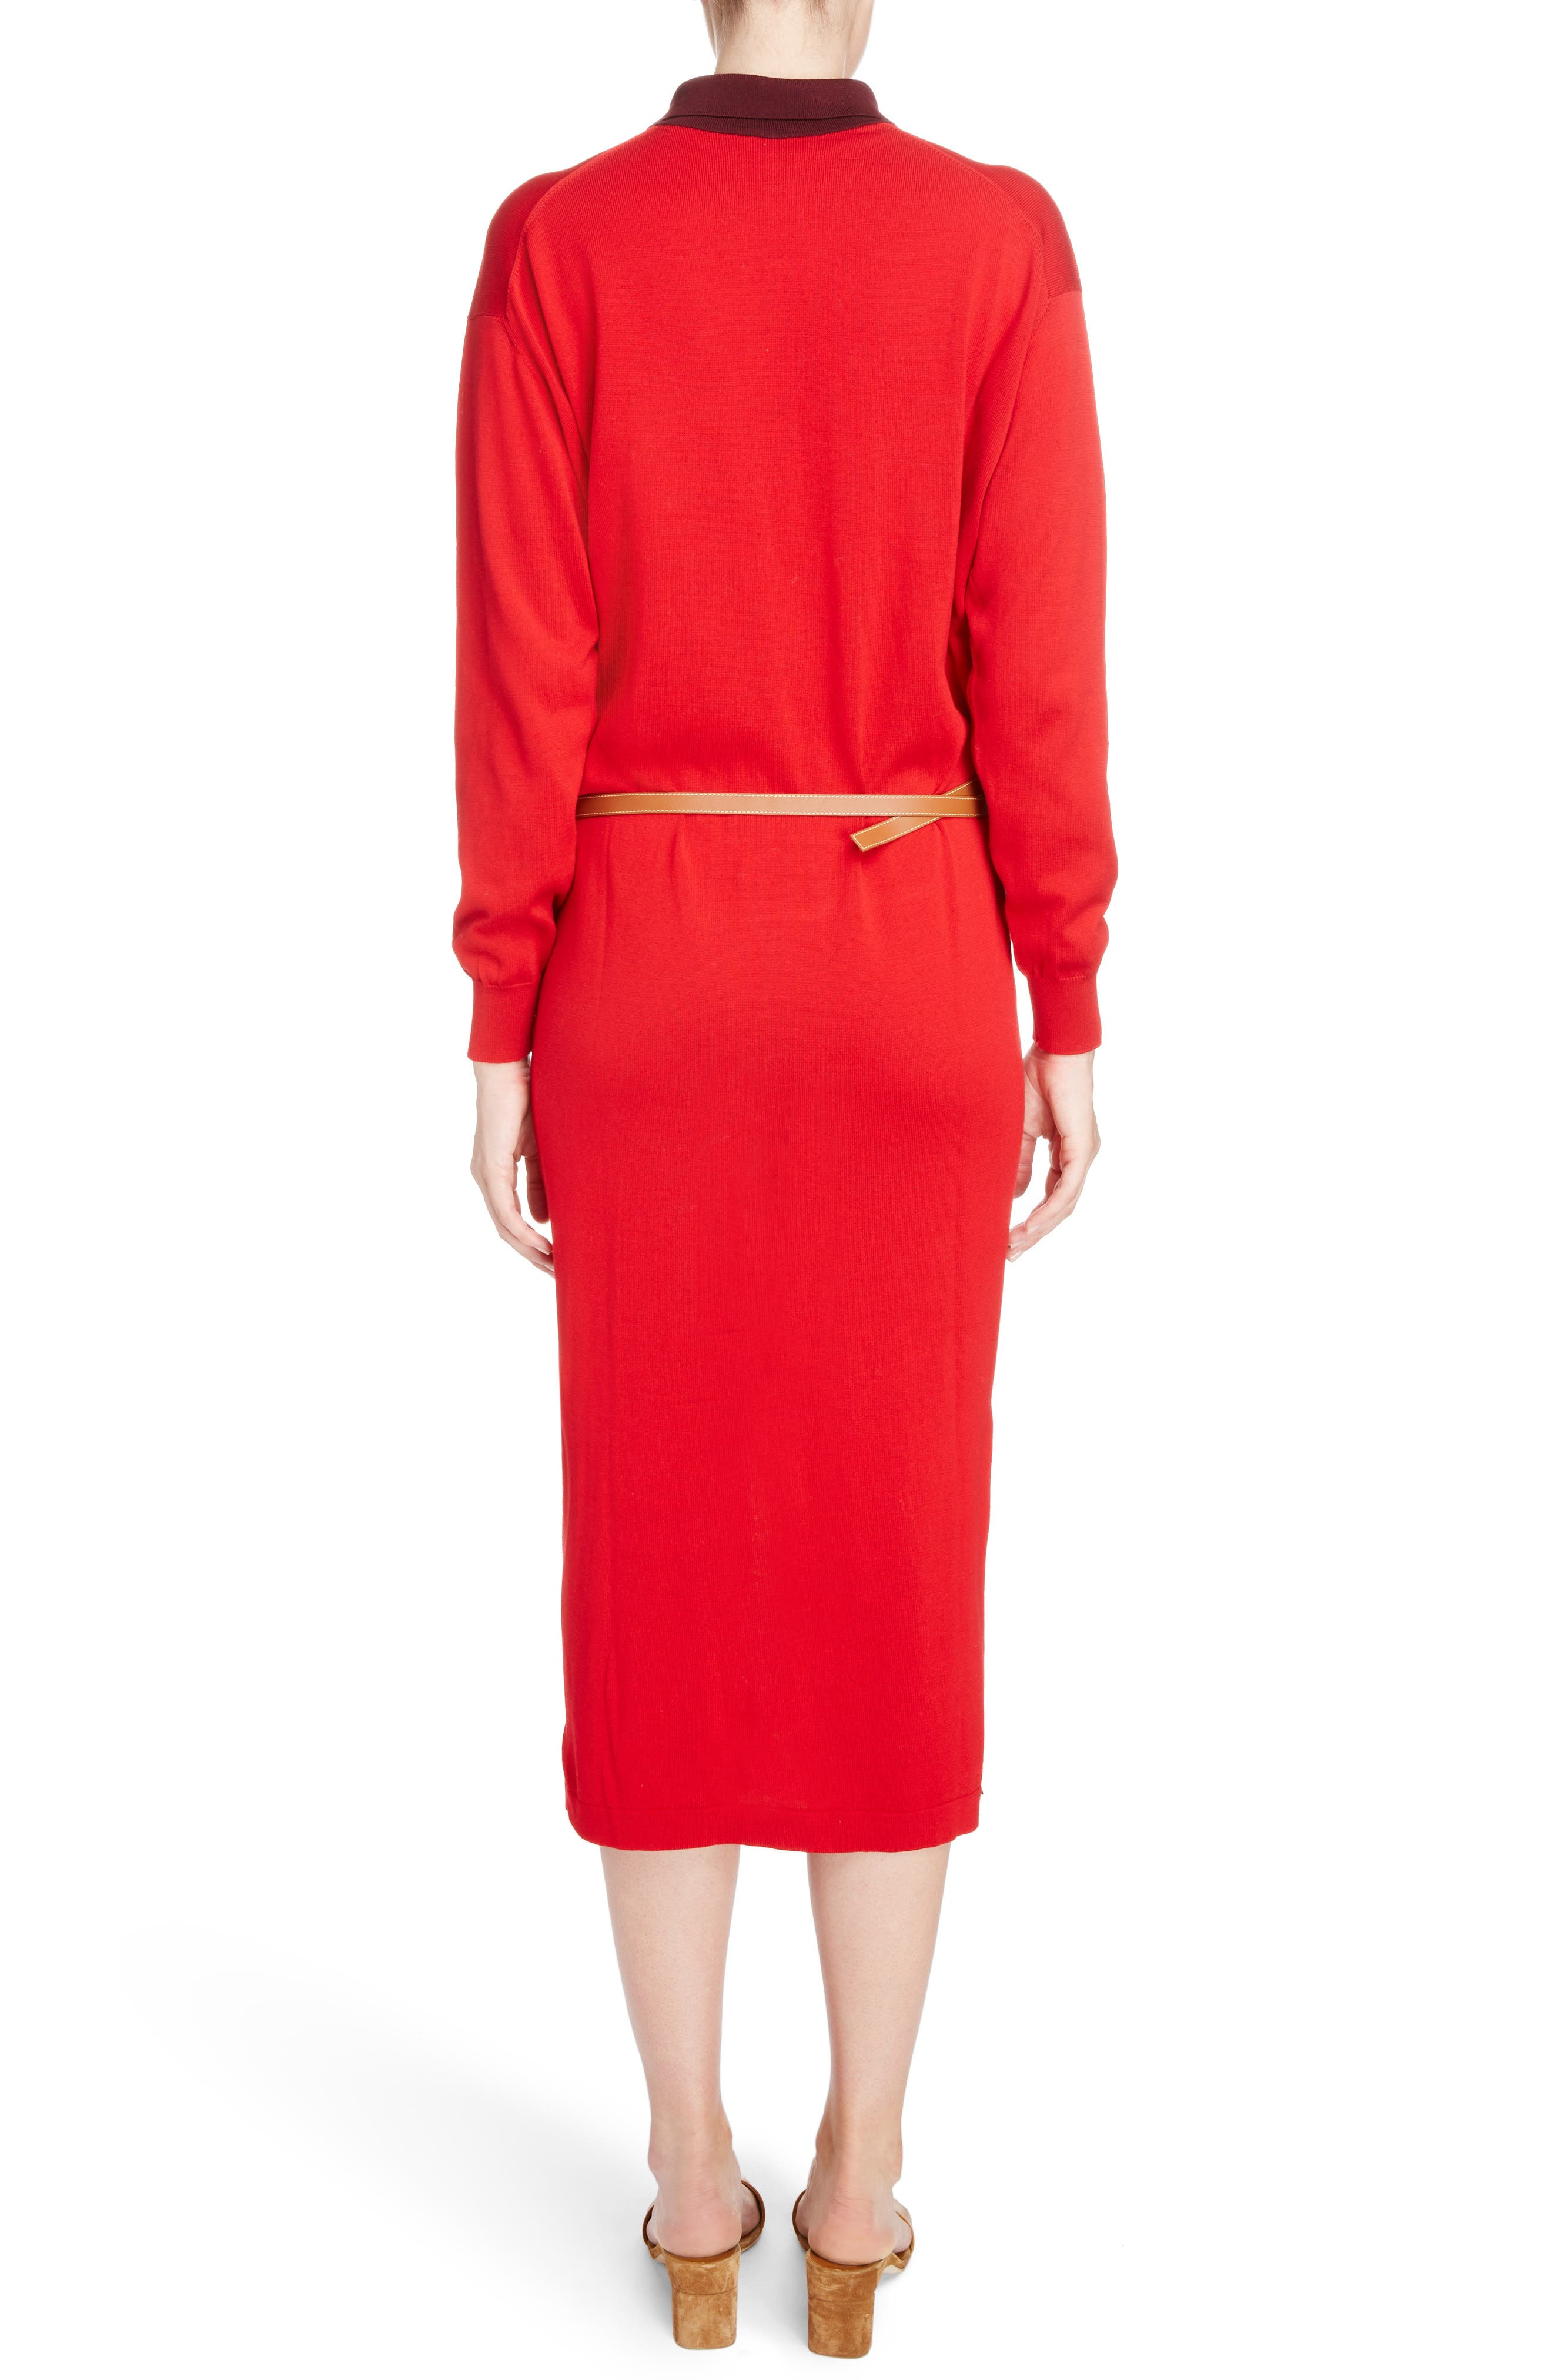 Belted Polo Dress,                             Alternate thumbnail 2, color,                             Red/ Burgundy